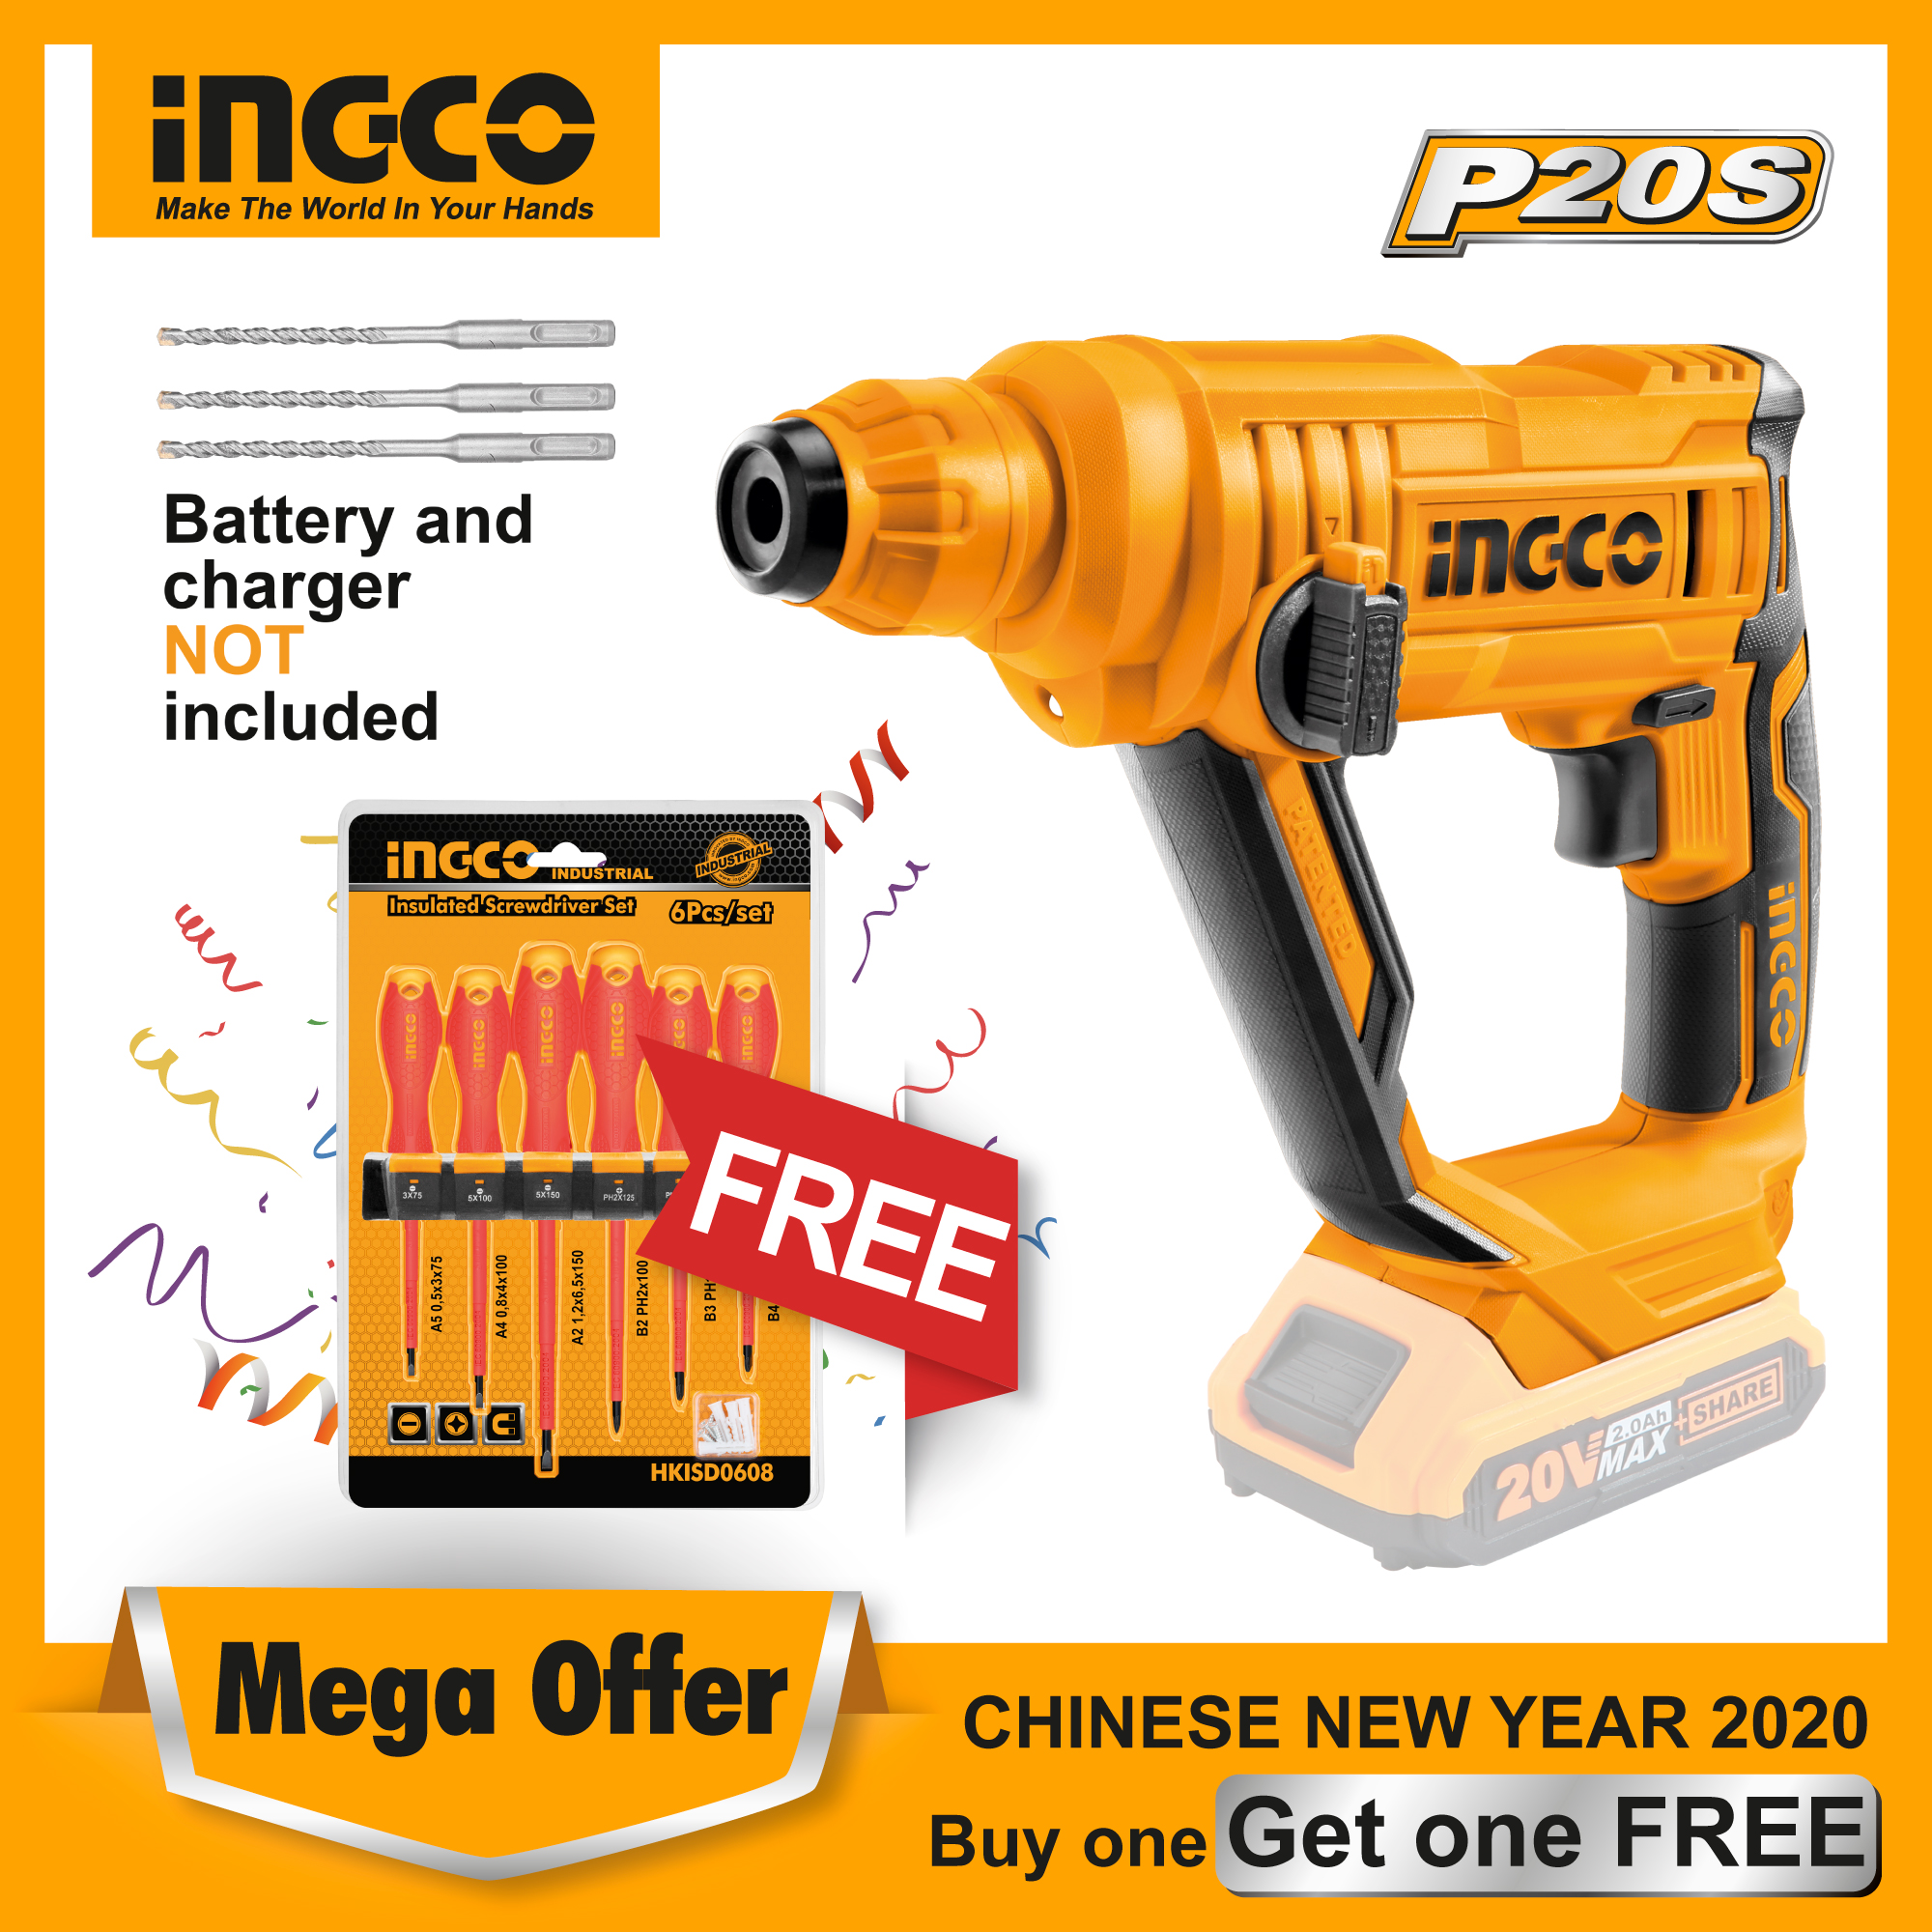 INGCO 20V Lithium-Ion Rotary Hammer Drill with 3pcs SDS-plus Drill Bits CRHLI1601 (Bare Unit)